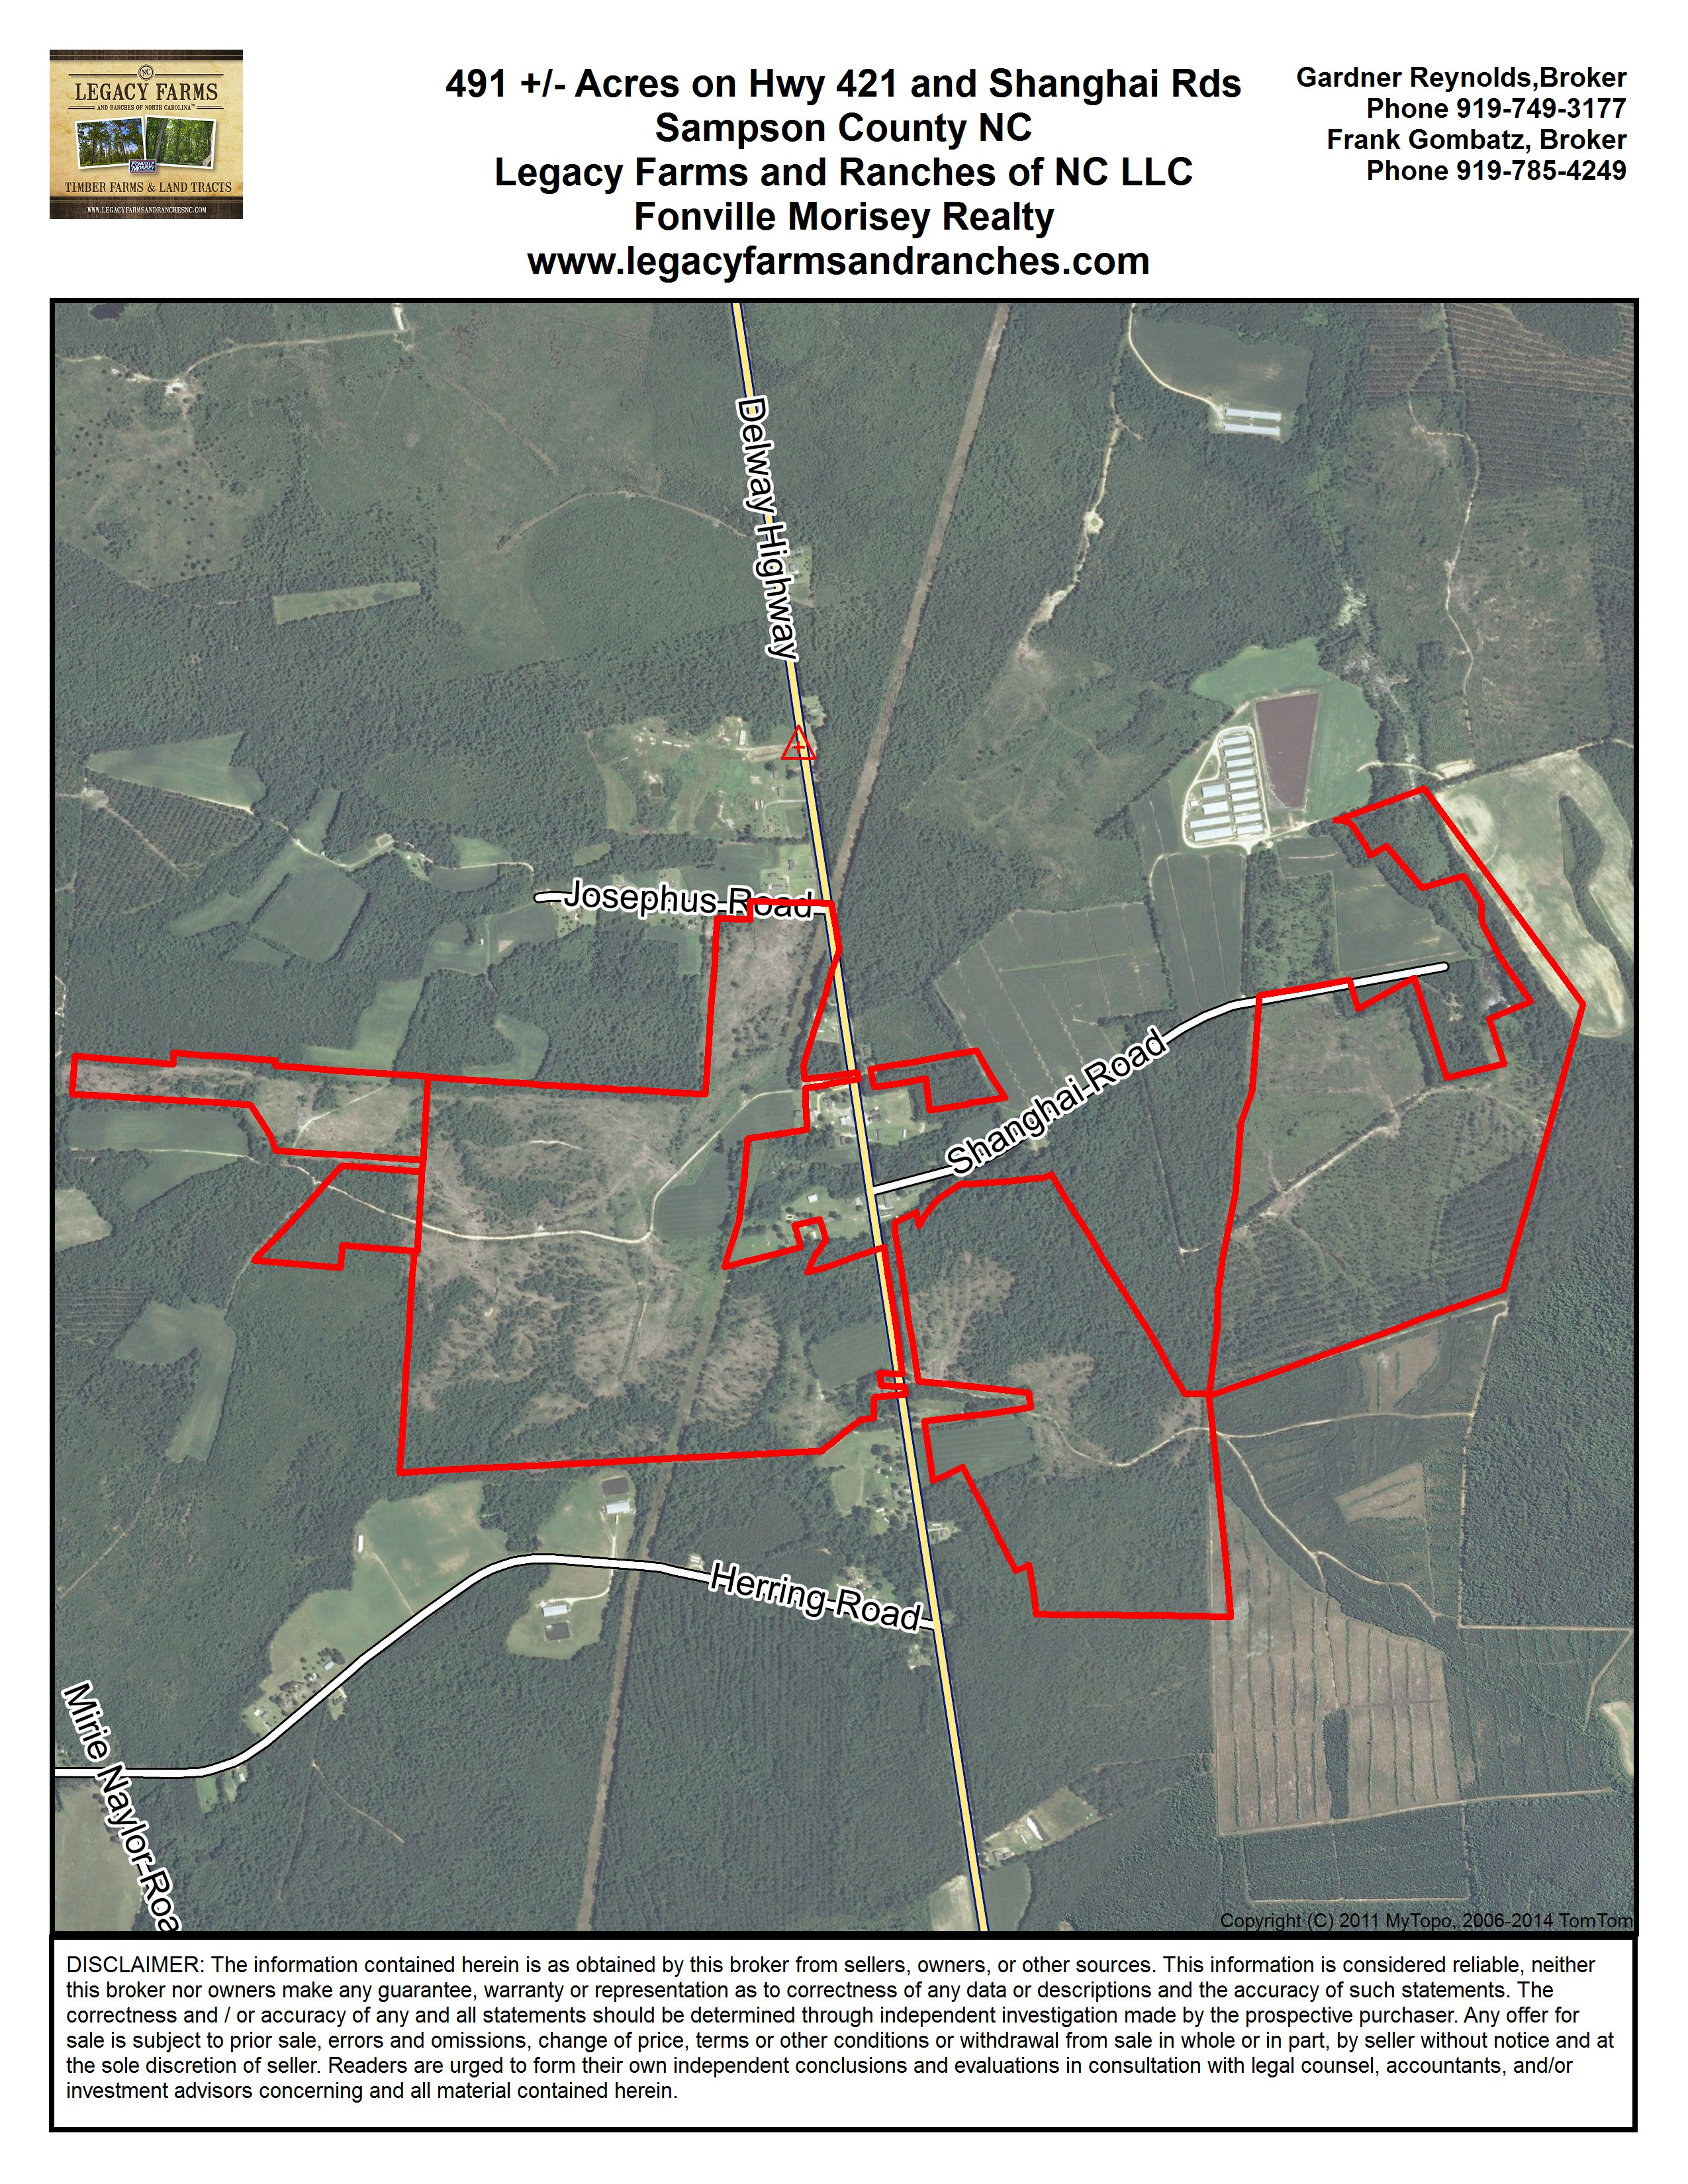 Sampson County 491 acres for sale   Legacy Farms & Ranches NC   919-749-3177